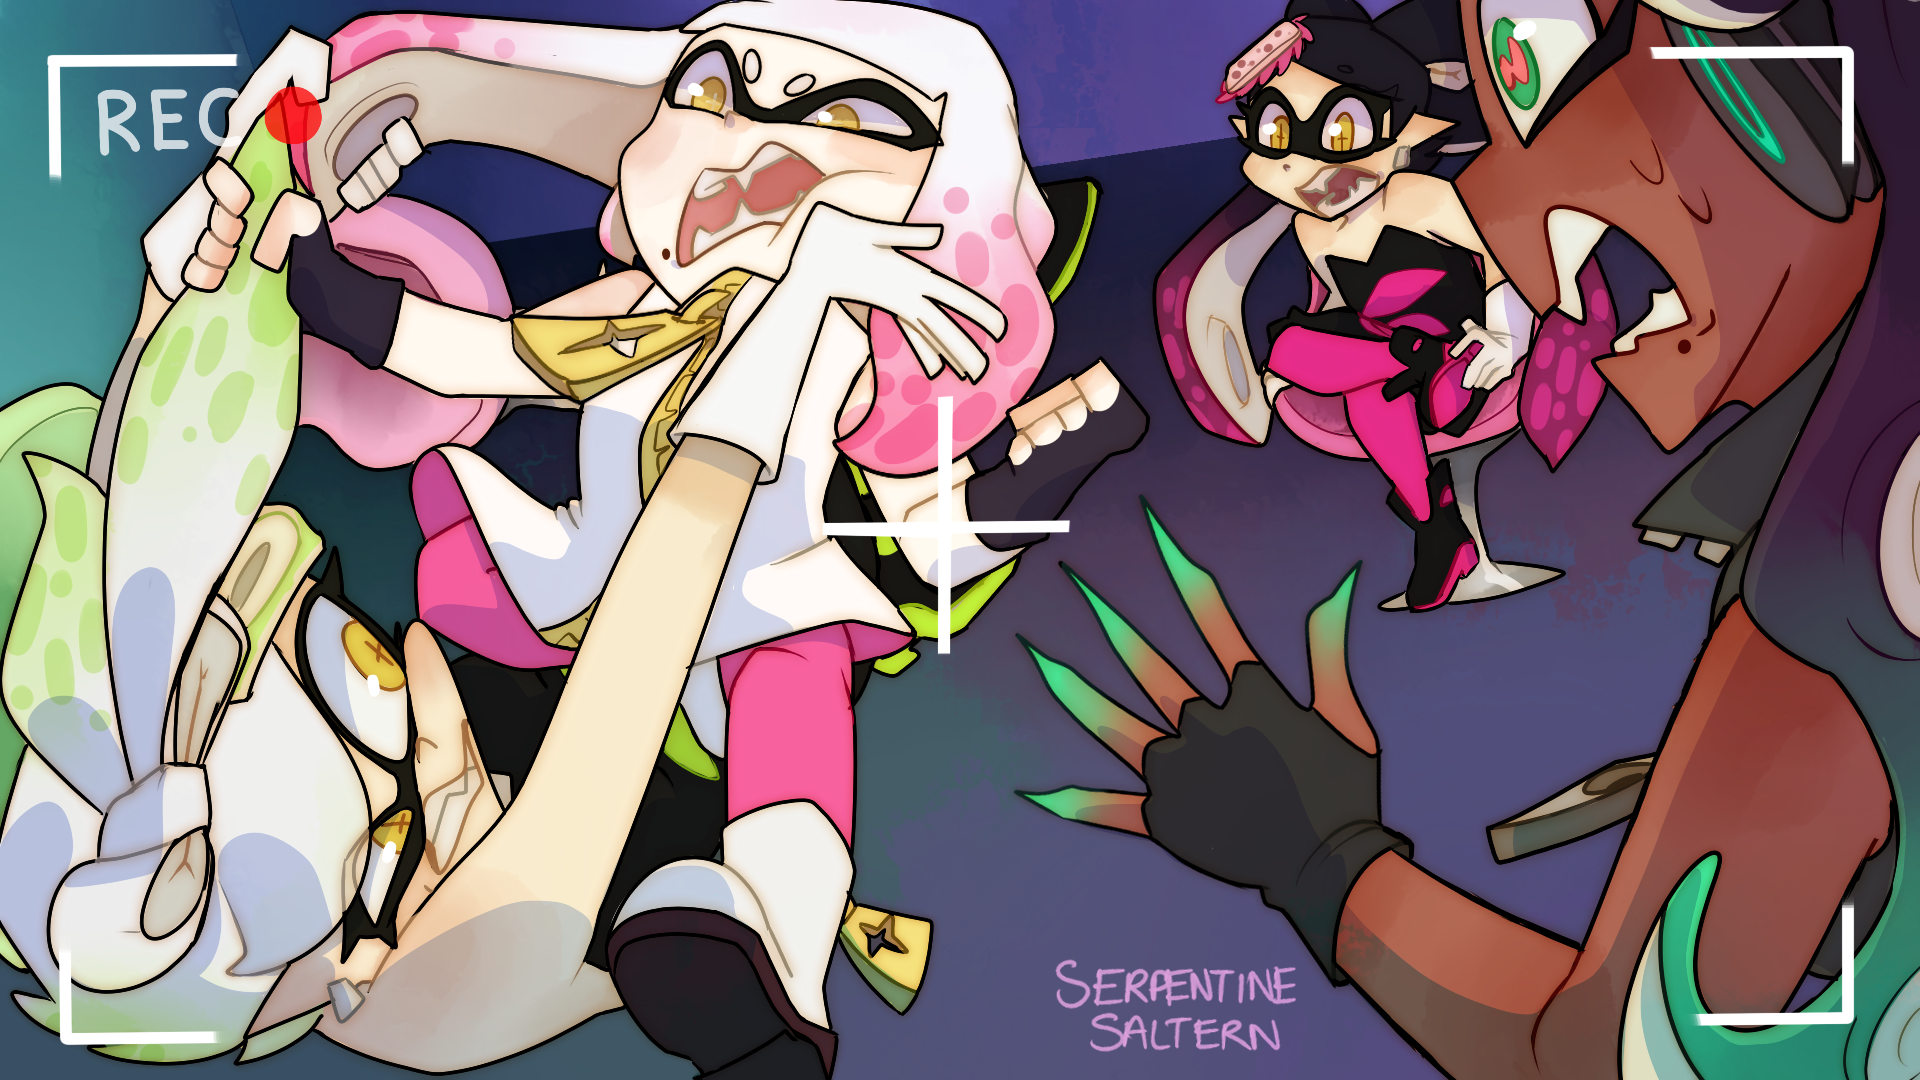 AND WE'RE LIVE! (+SPEEDPAINT)